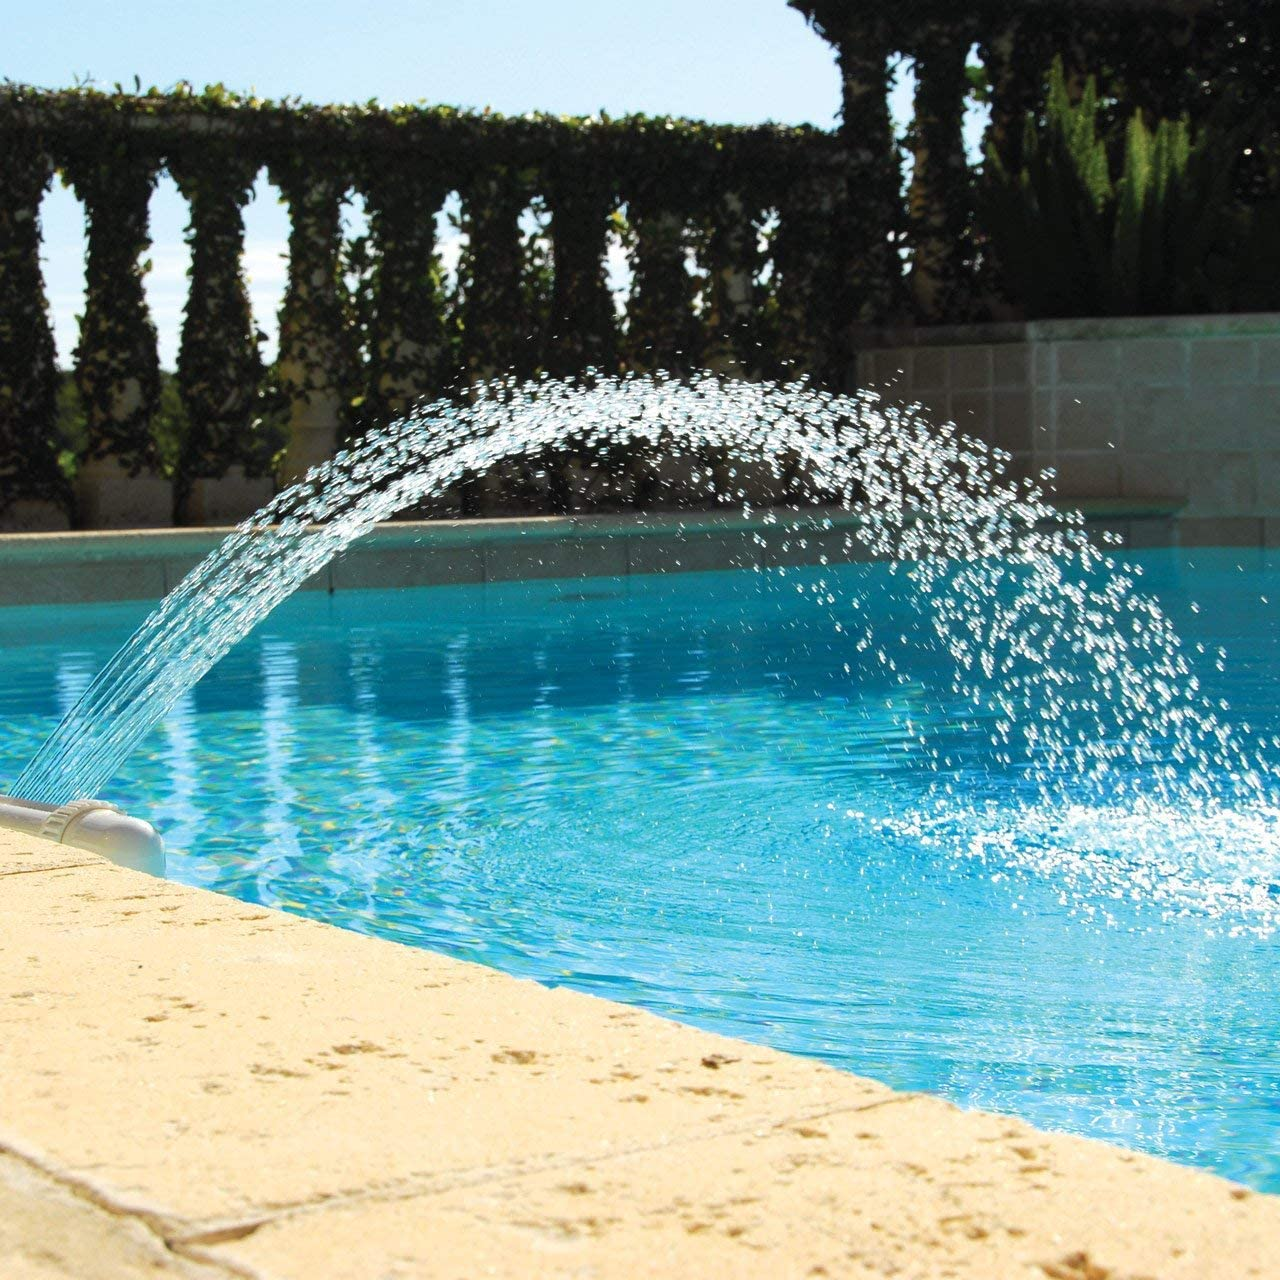 "Waterfall Pool Fountain Spray Water Adjustable Fun Sprinklers Pool Decor, Fits Most 1.5"" InGround & Above Ground Threaded Return Jets"